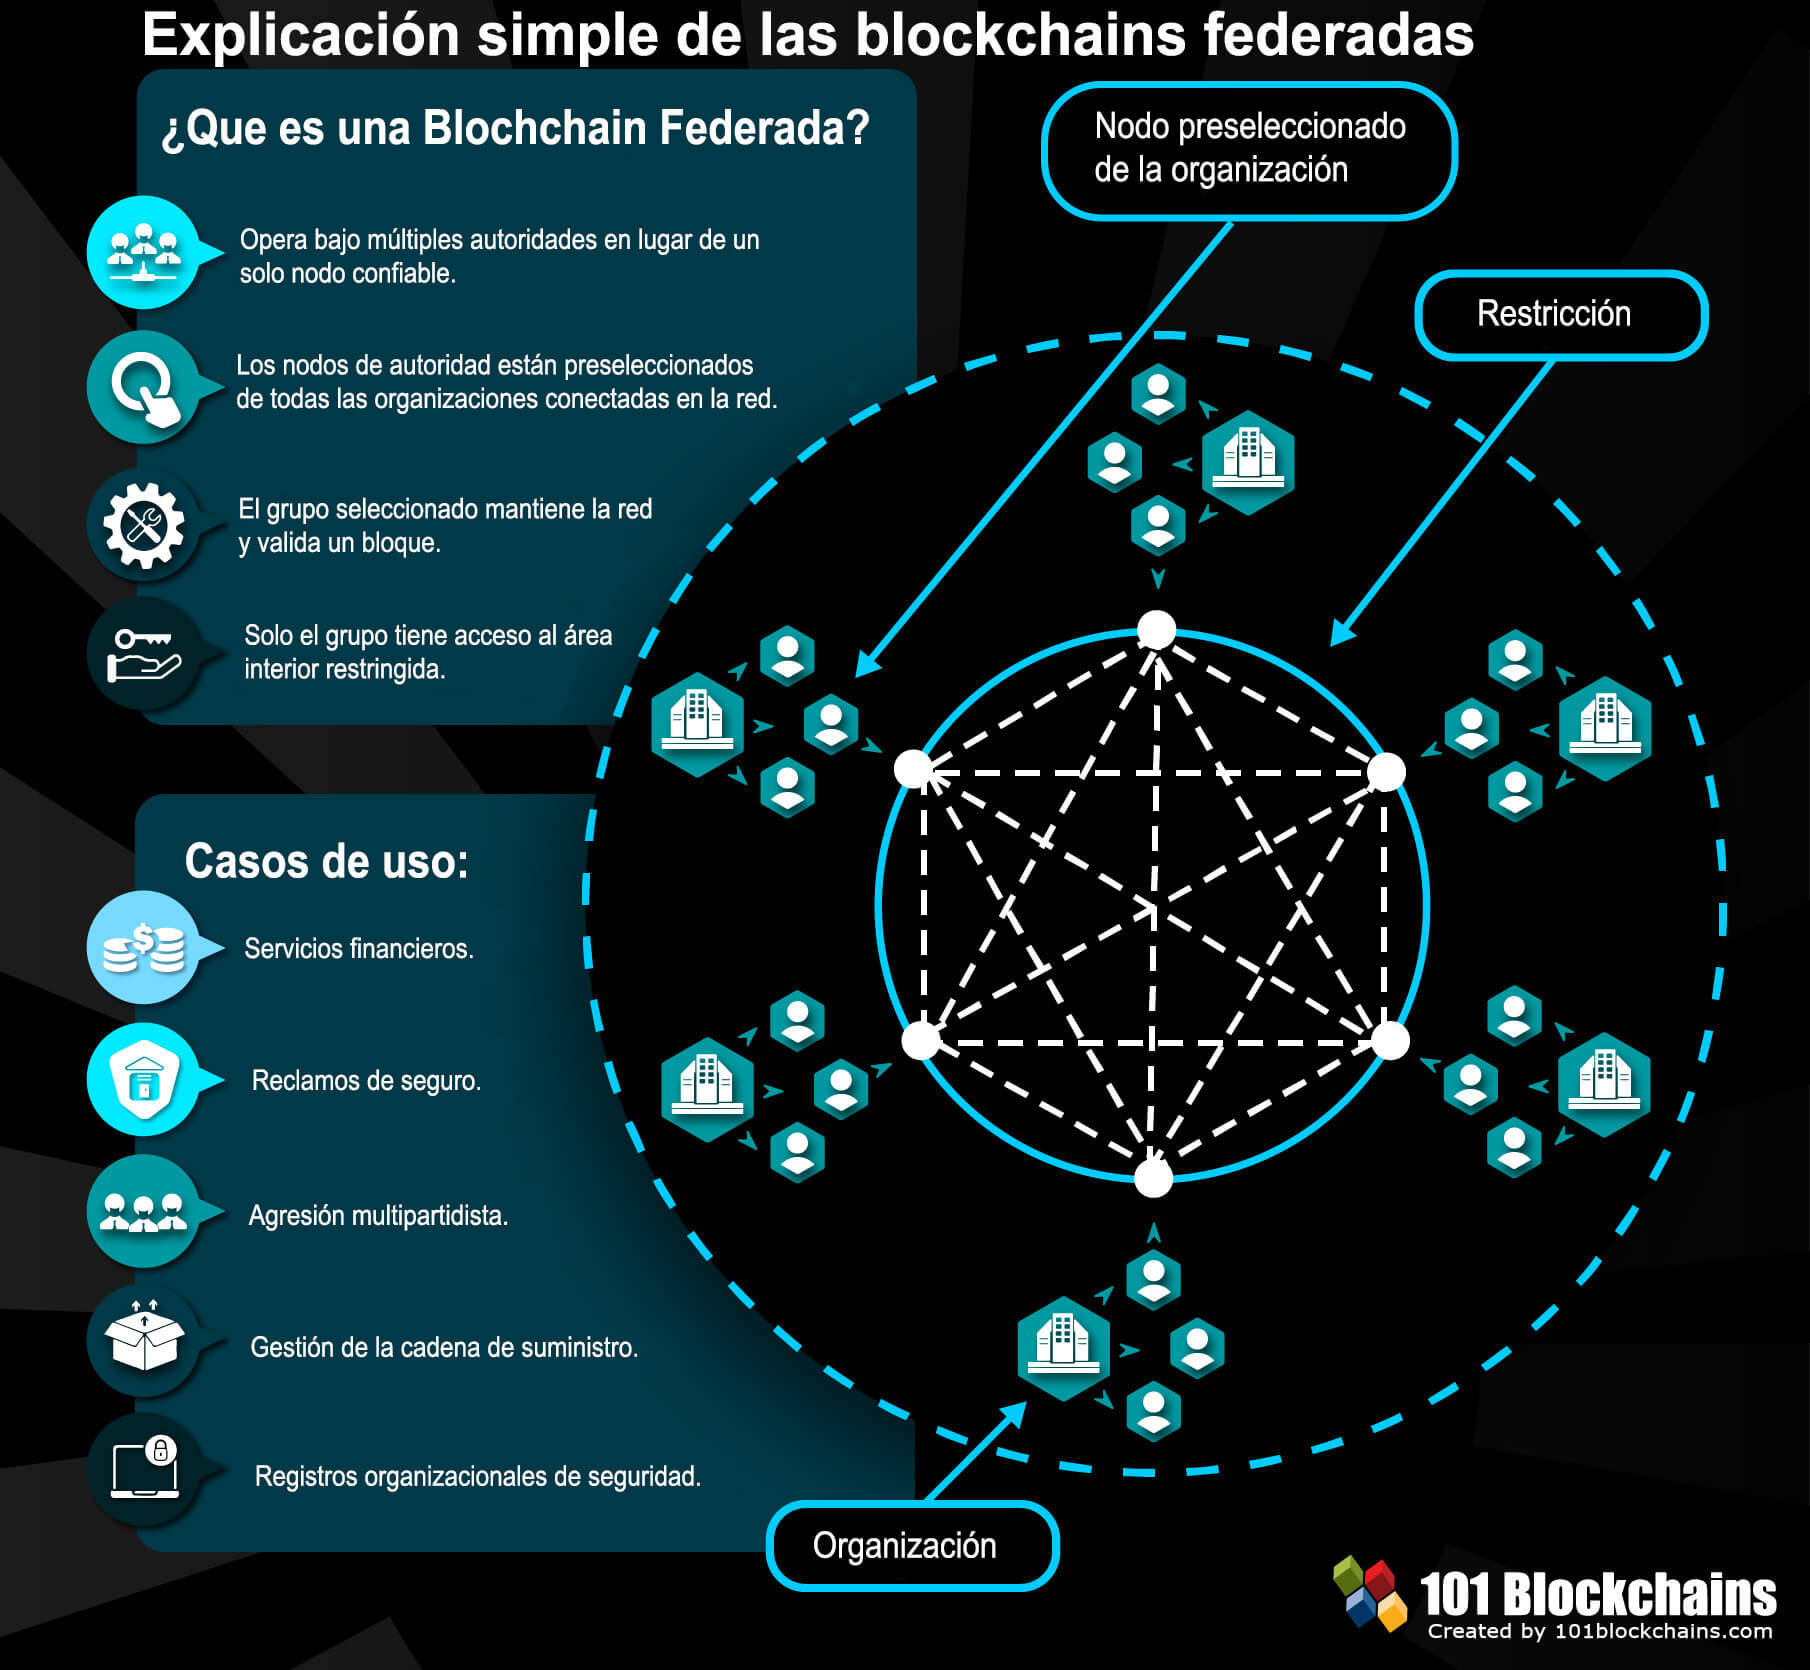 blockchains federada - Explicación simple de los consorcio de blockchains